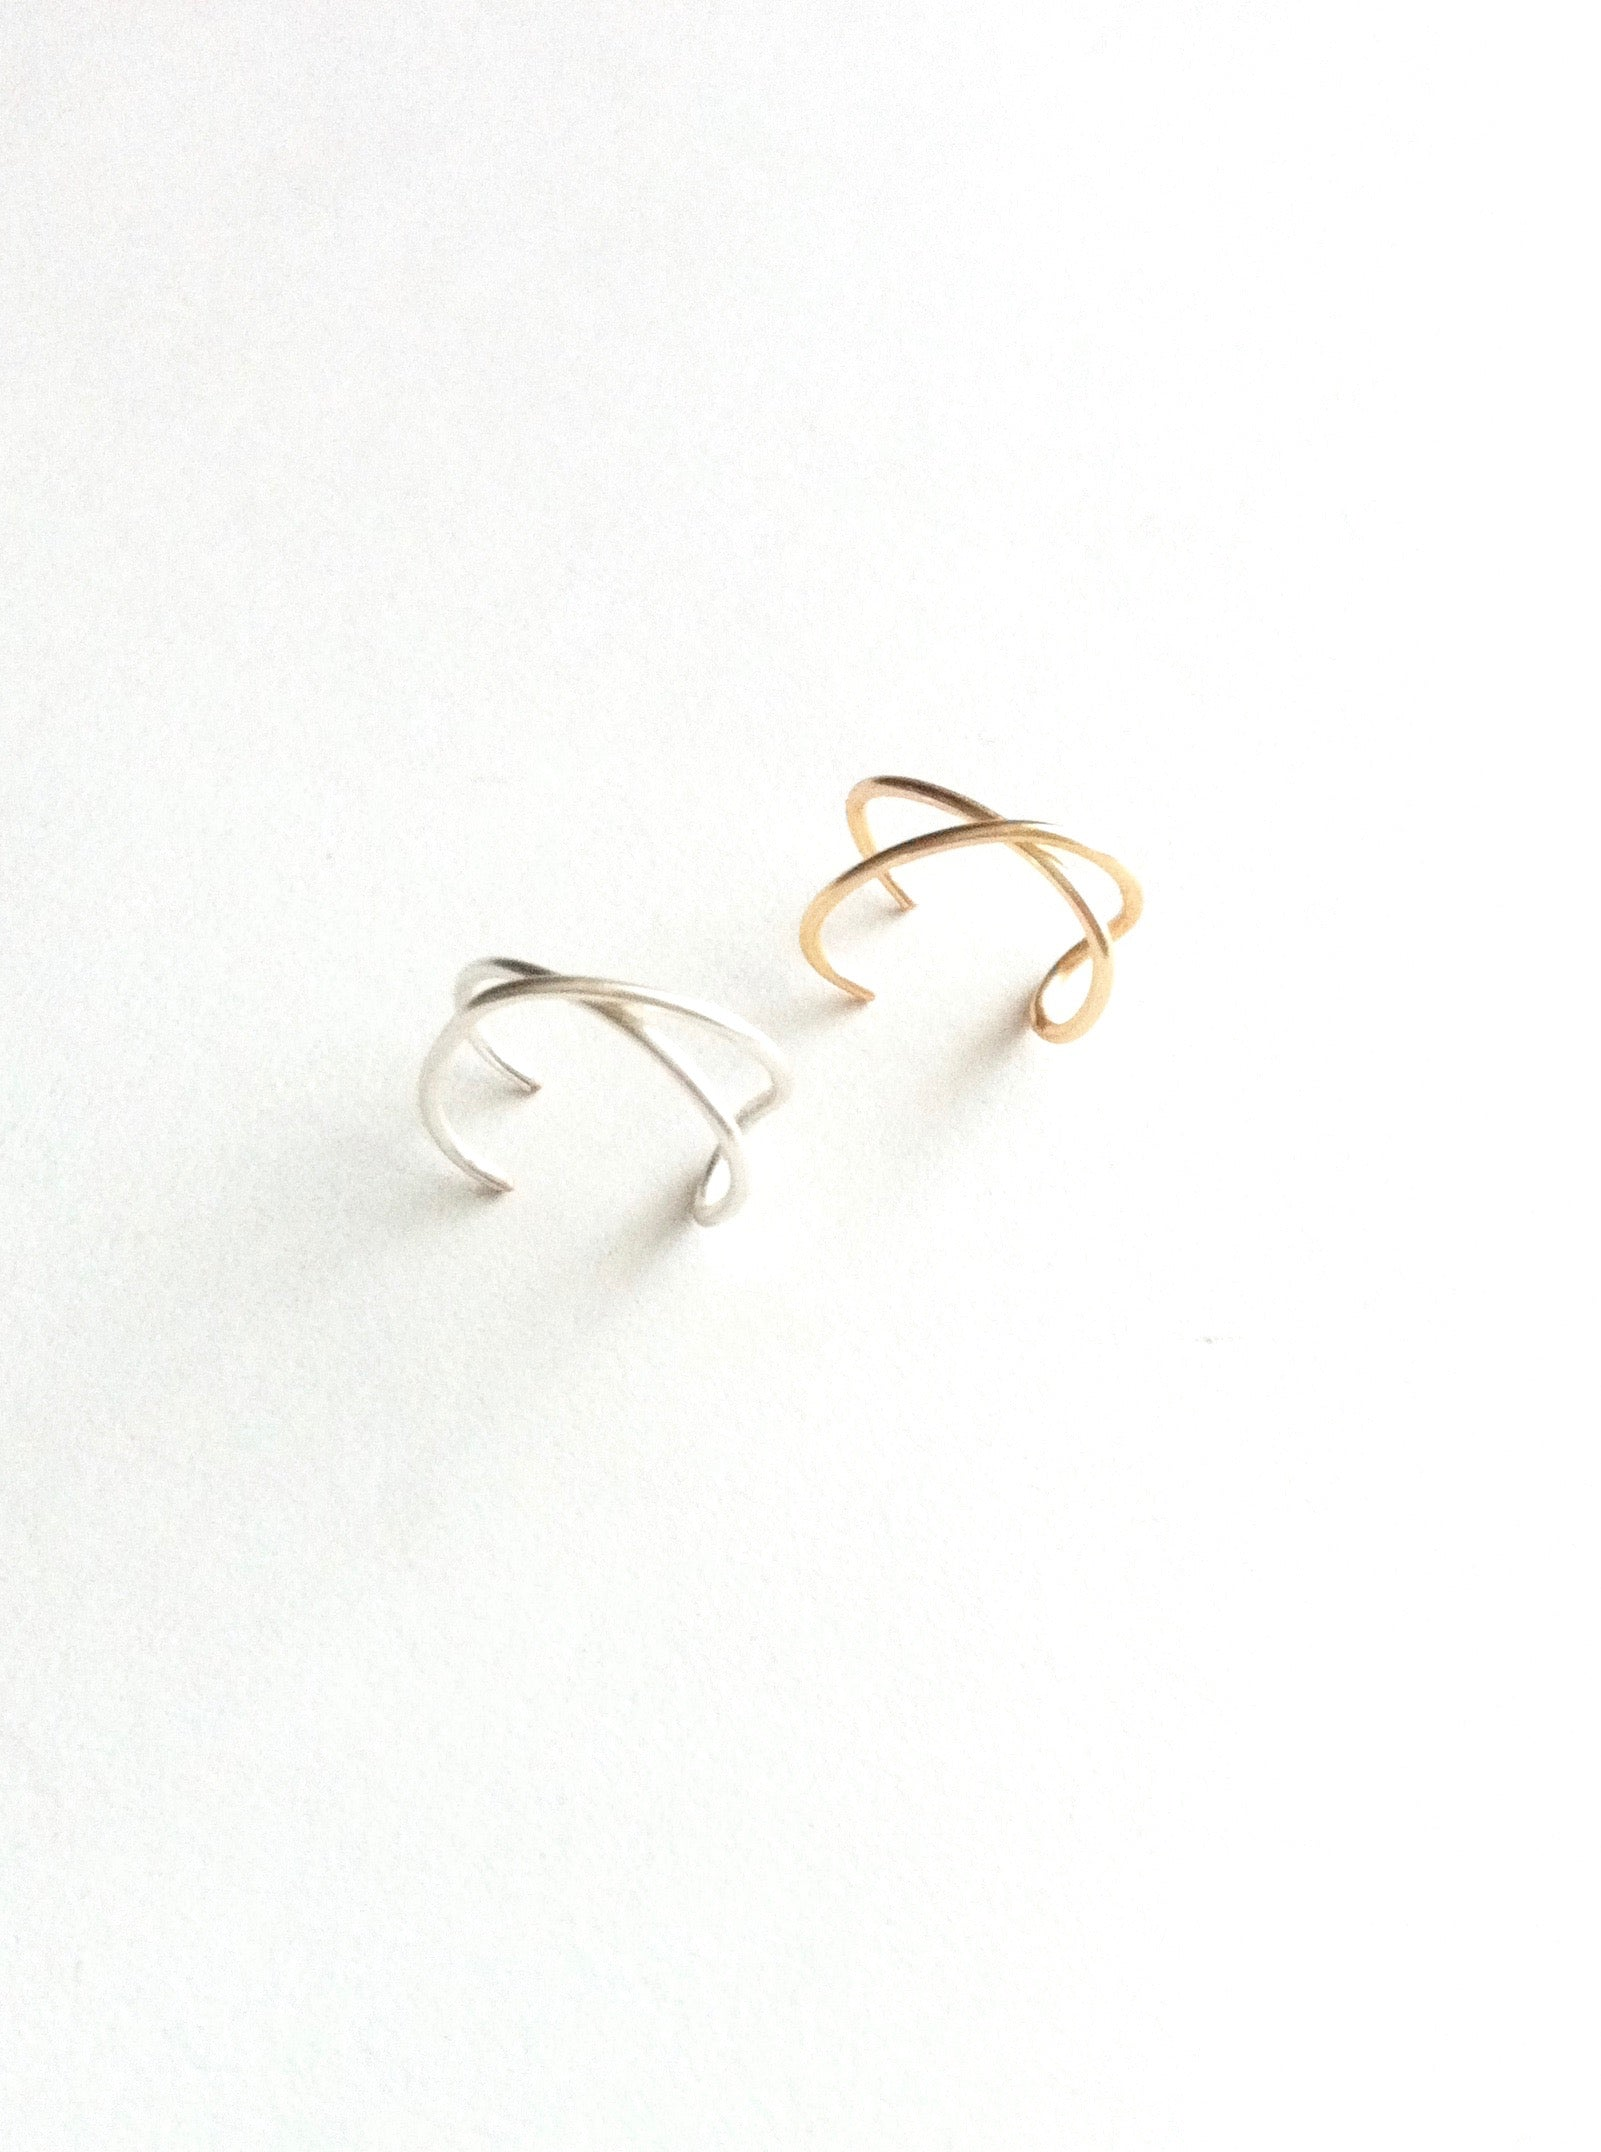 Double Criss Cross Faux Ear Cuff Set | Fake Cartilage Piercing Ear Cuff | Non Pierced Ear Cuff | IB Jewelry